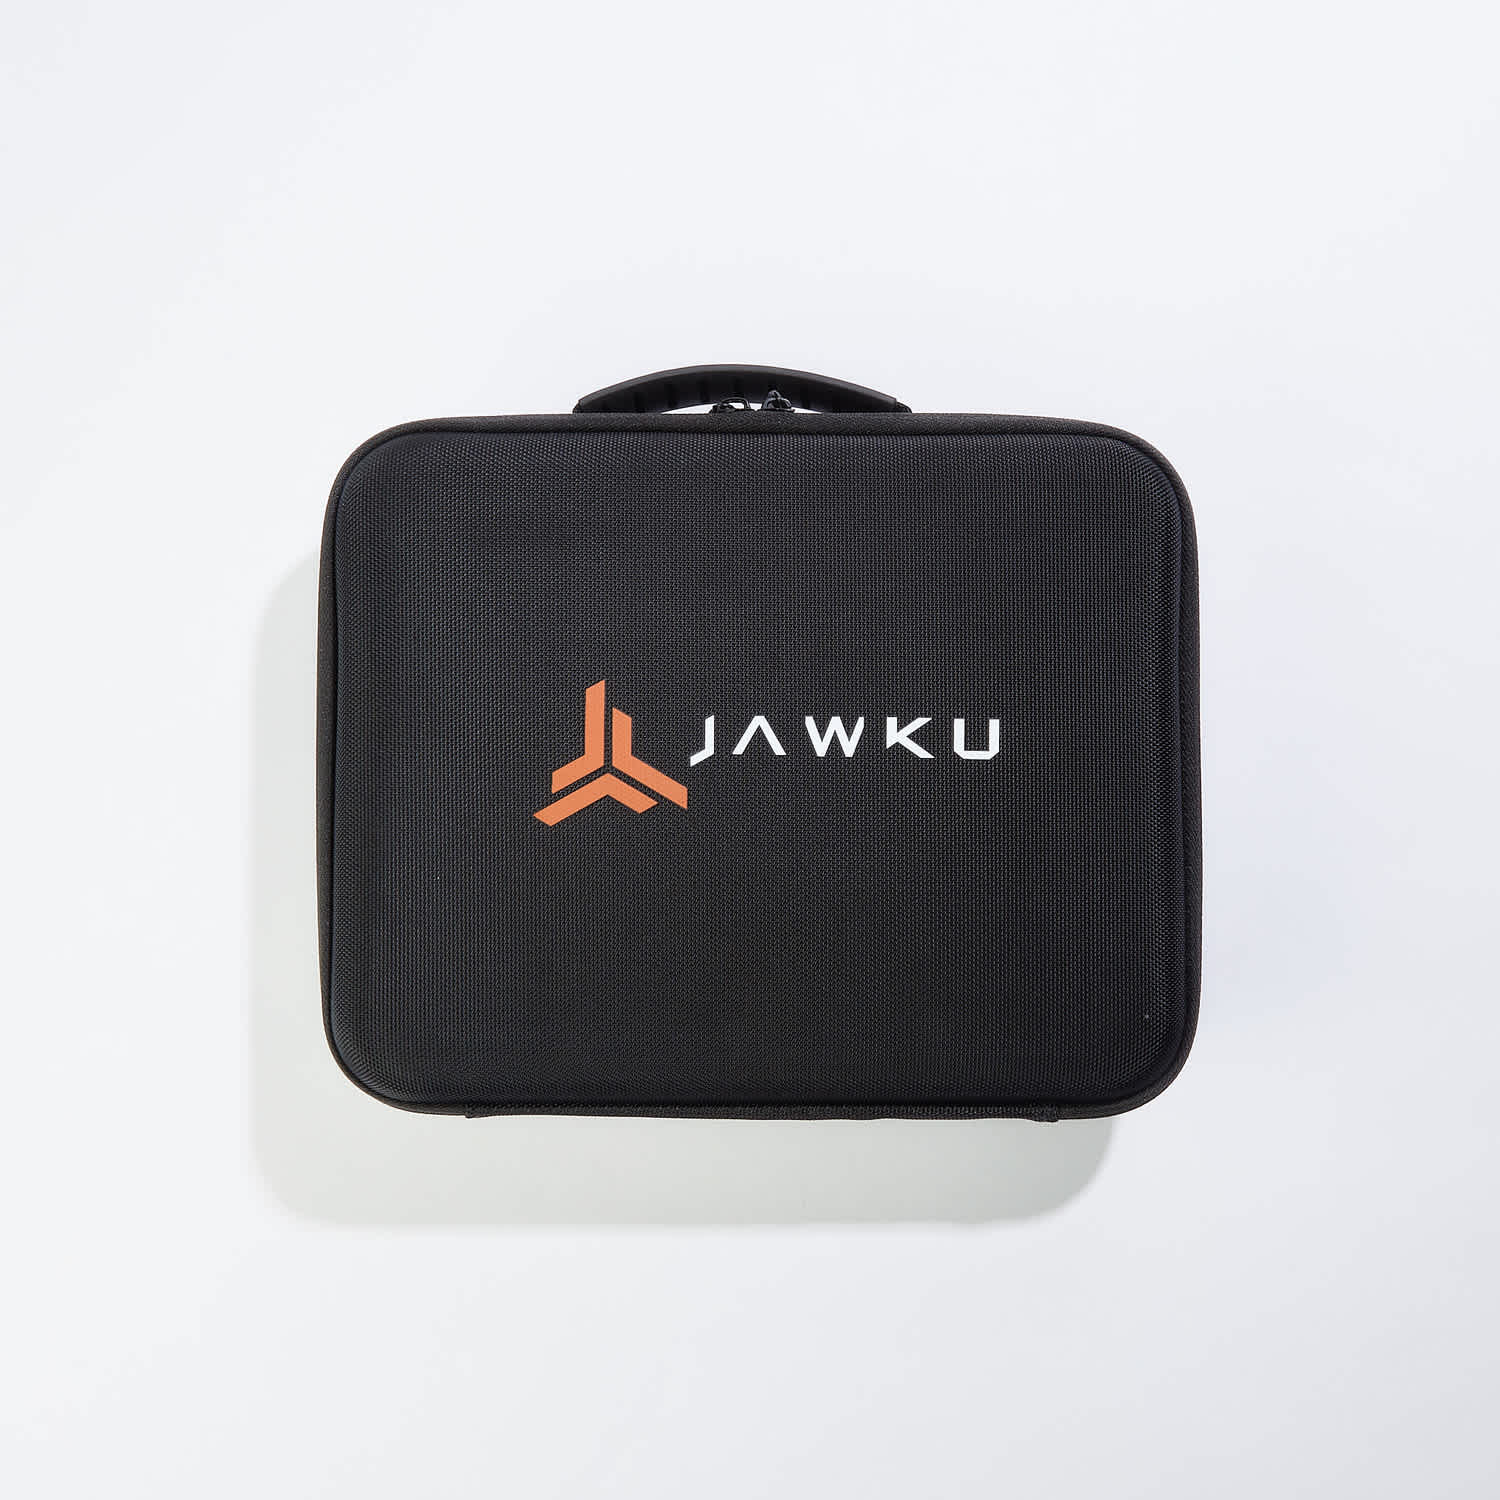 Jawku muscle blaster v2 in a closed case